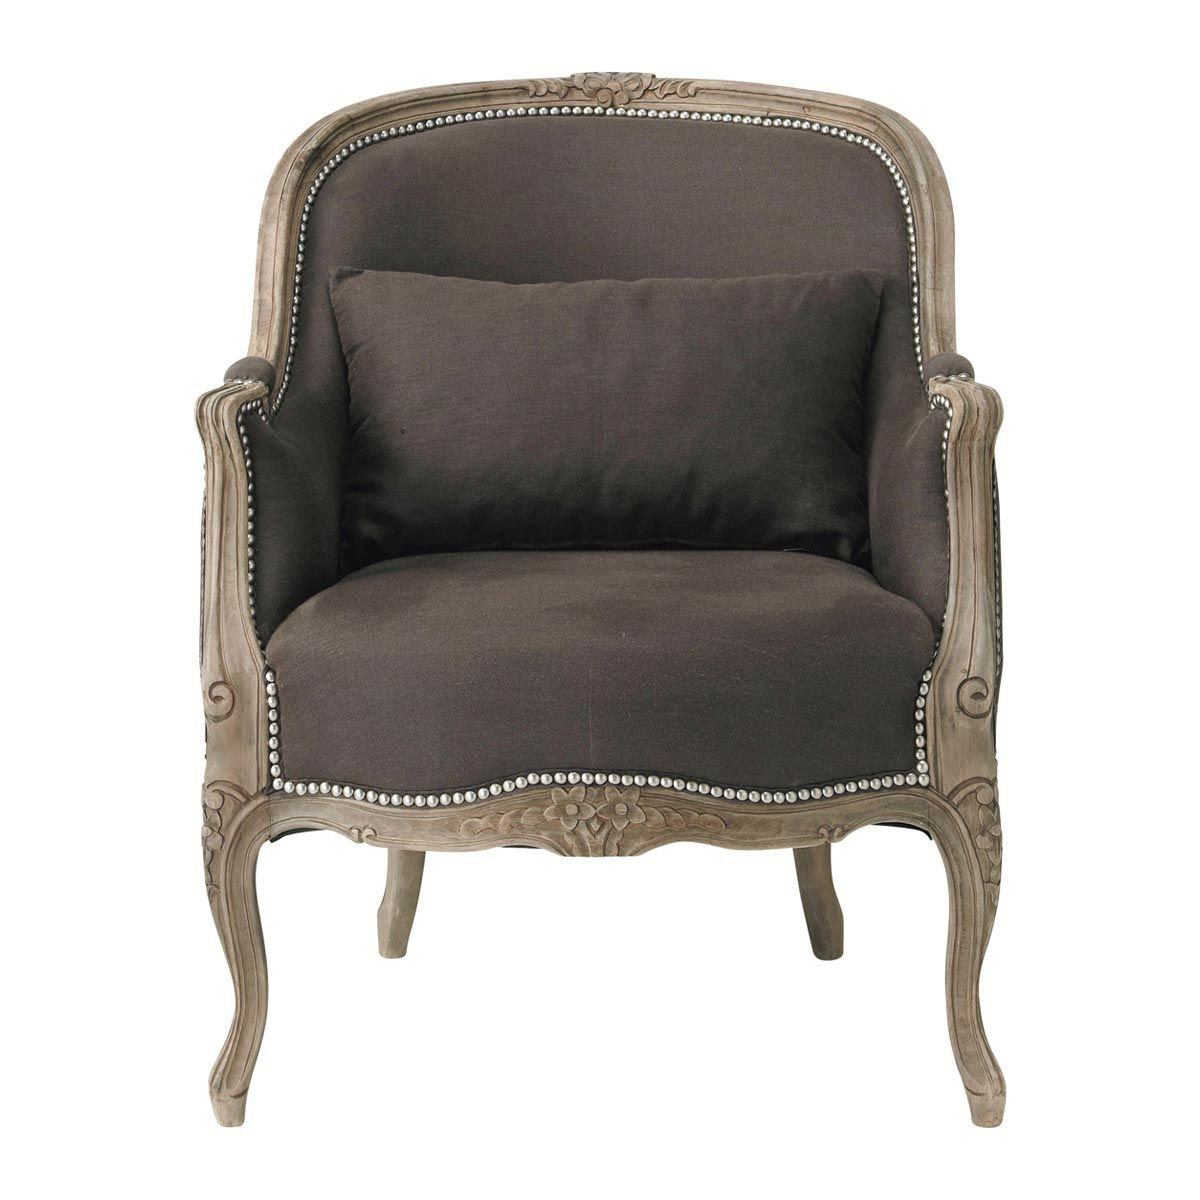 Affordable Armchairs: Armchair, Affordable Furniture, Velvet